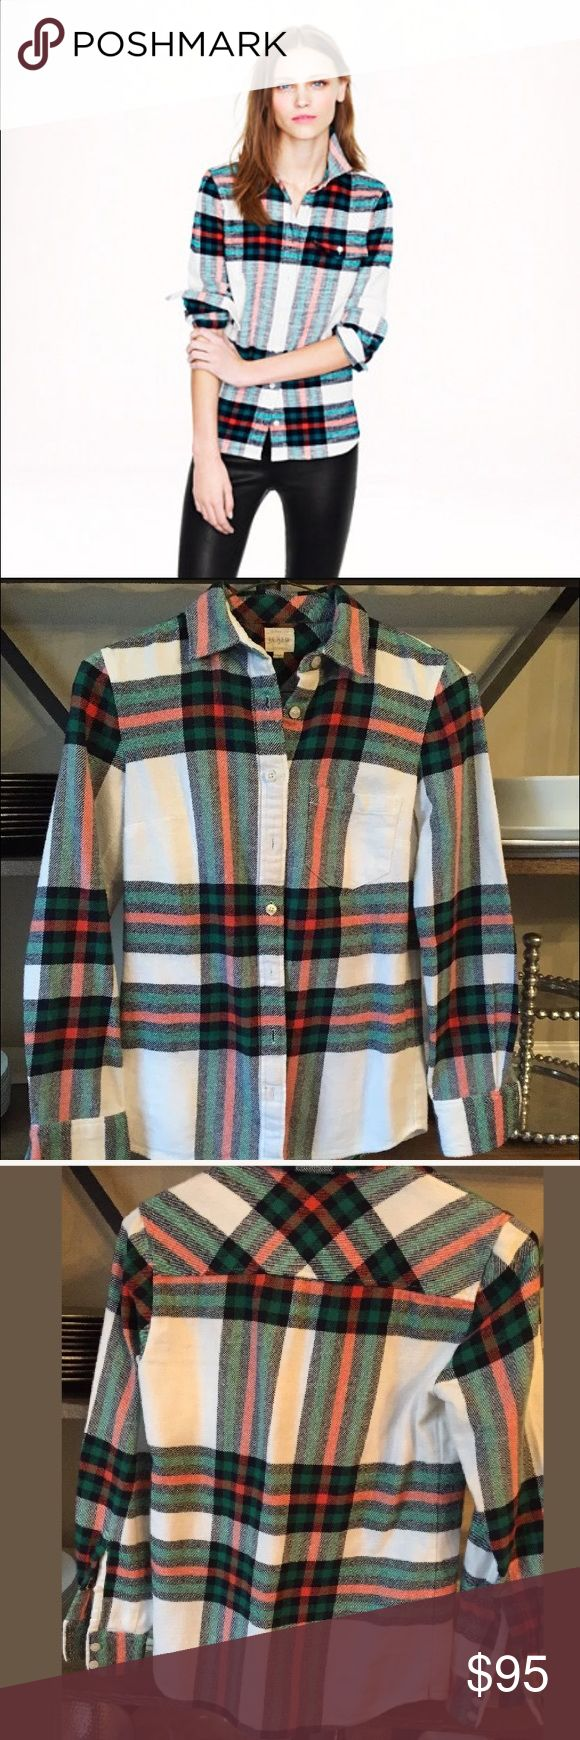 J. Crew Rock Salt plaid flannel shirt top RARE!! Highly sought after!!   J. Crew Factory Rock Salt Plaid button up shirt.  Worn and washed a few times, still in good condition! Does have some minor pilling which can easily be removed.   Super stylish and on trend!!   Size: PXXS  Authenticity guaranteed.  Offers welcome, NO trades J. Crew Tops Button Down Shirts